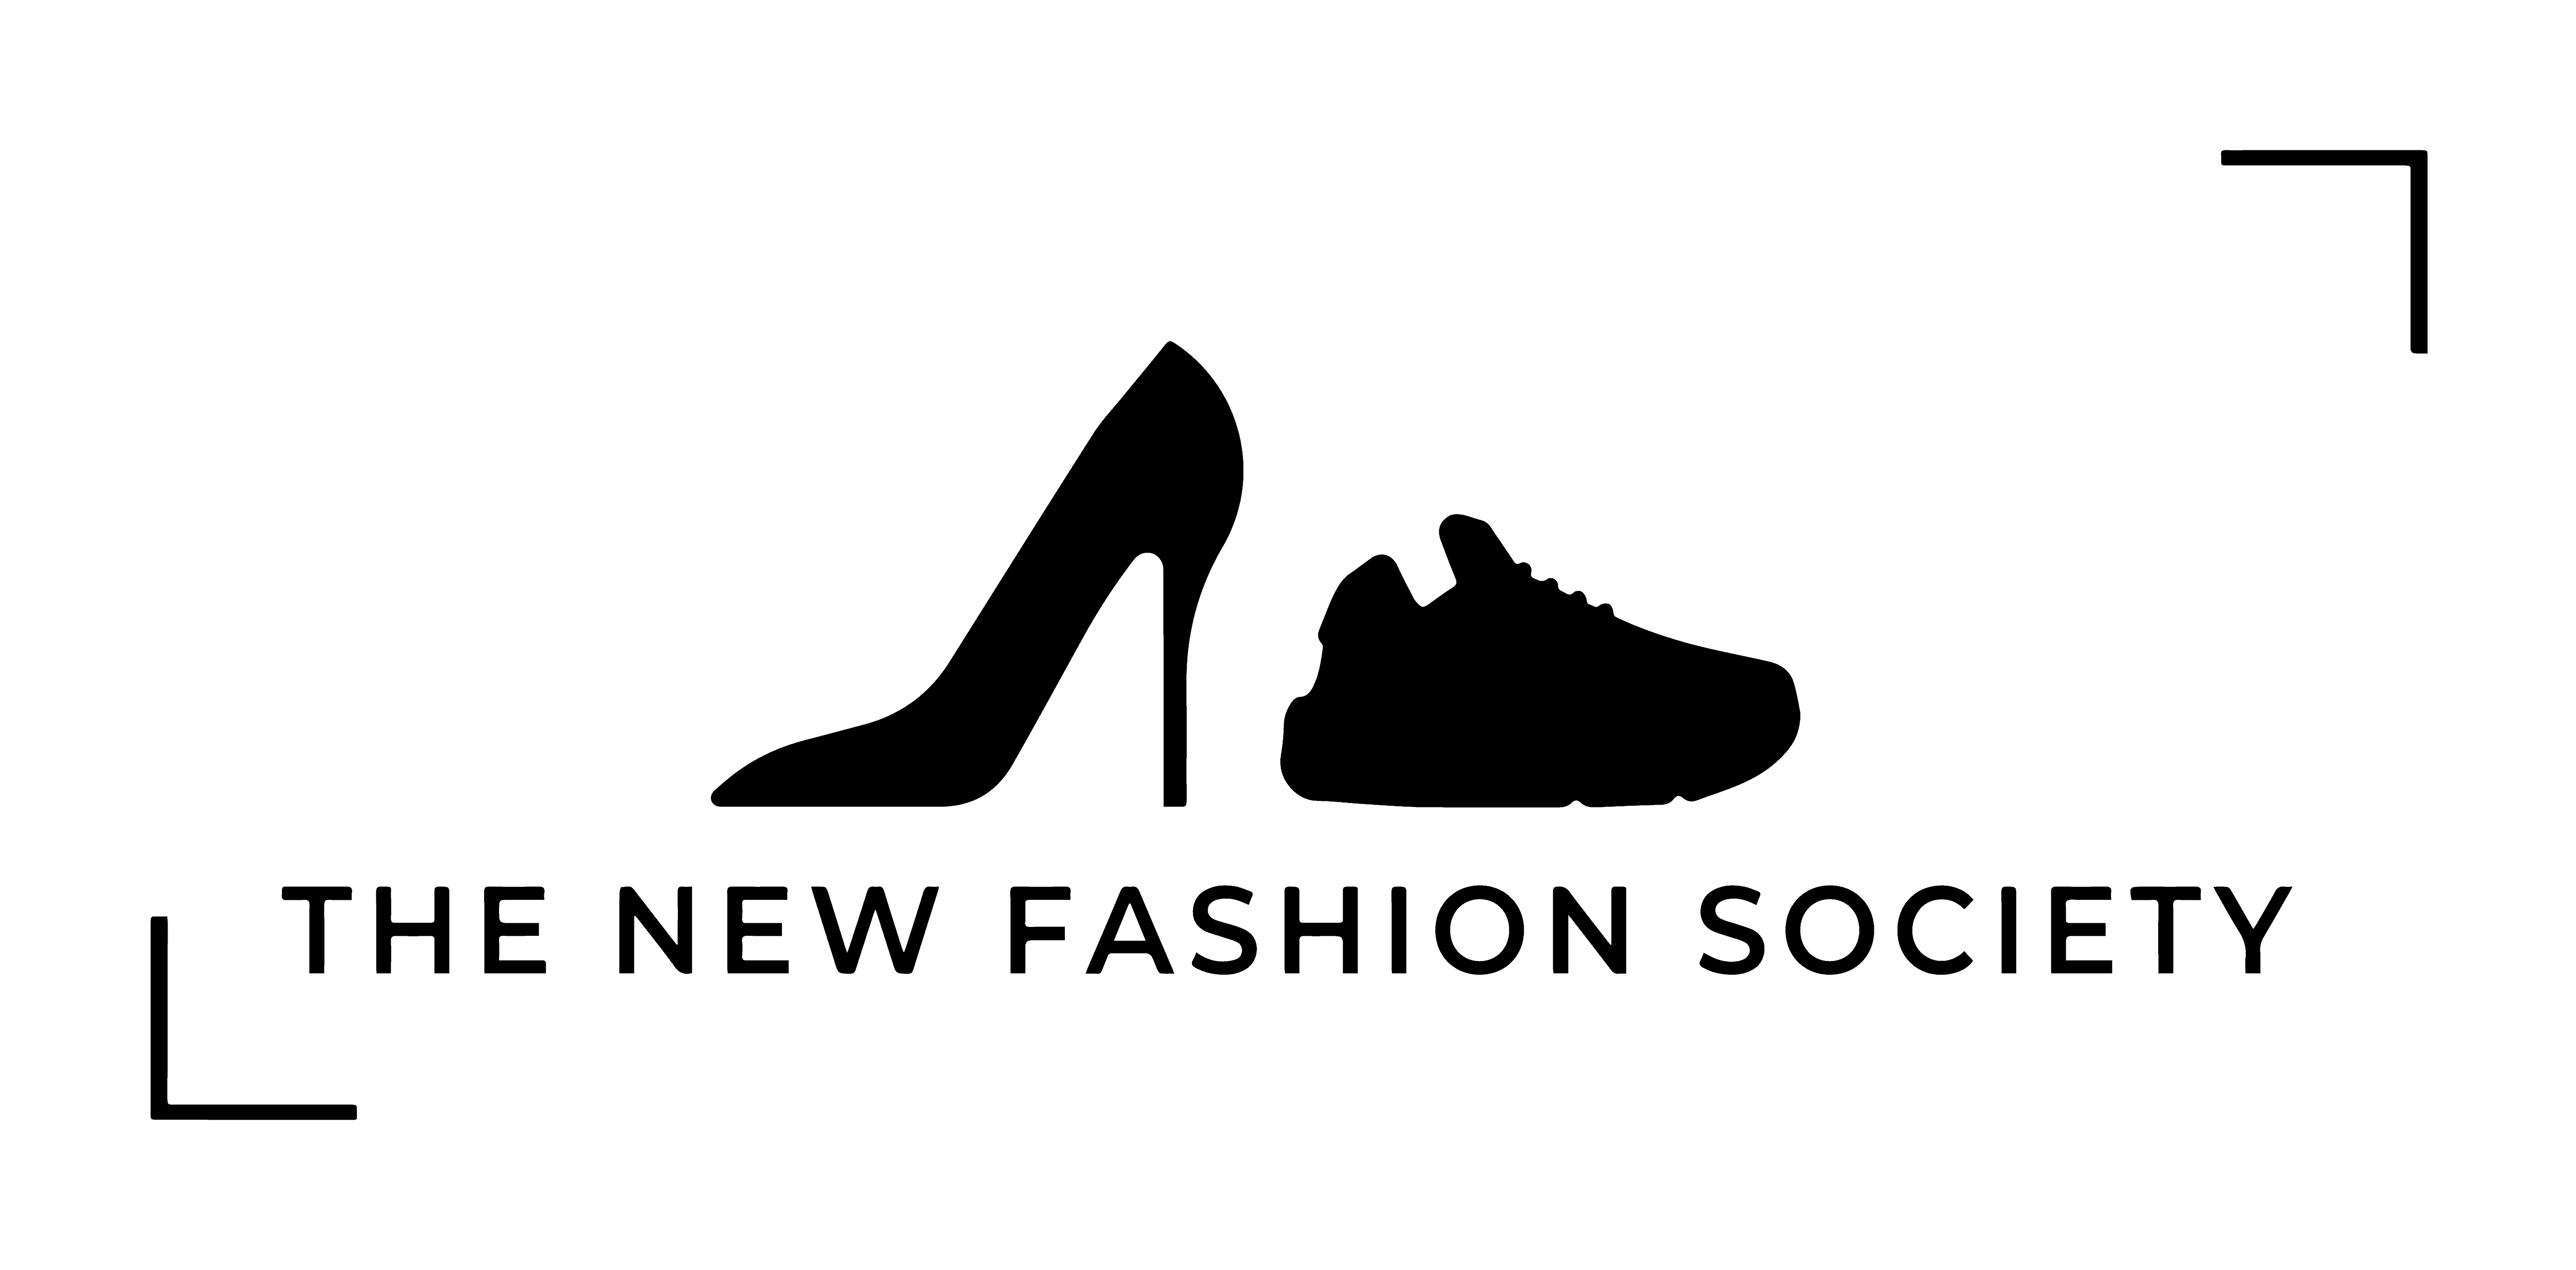 The New Fashion Society